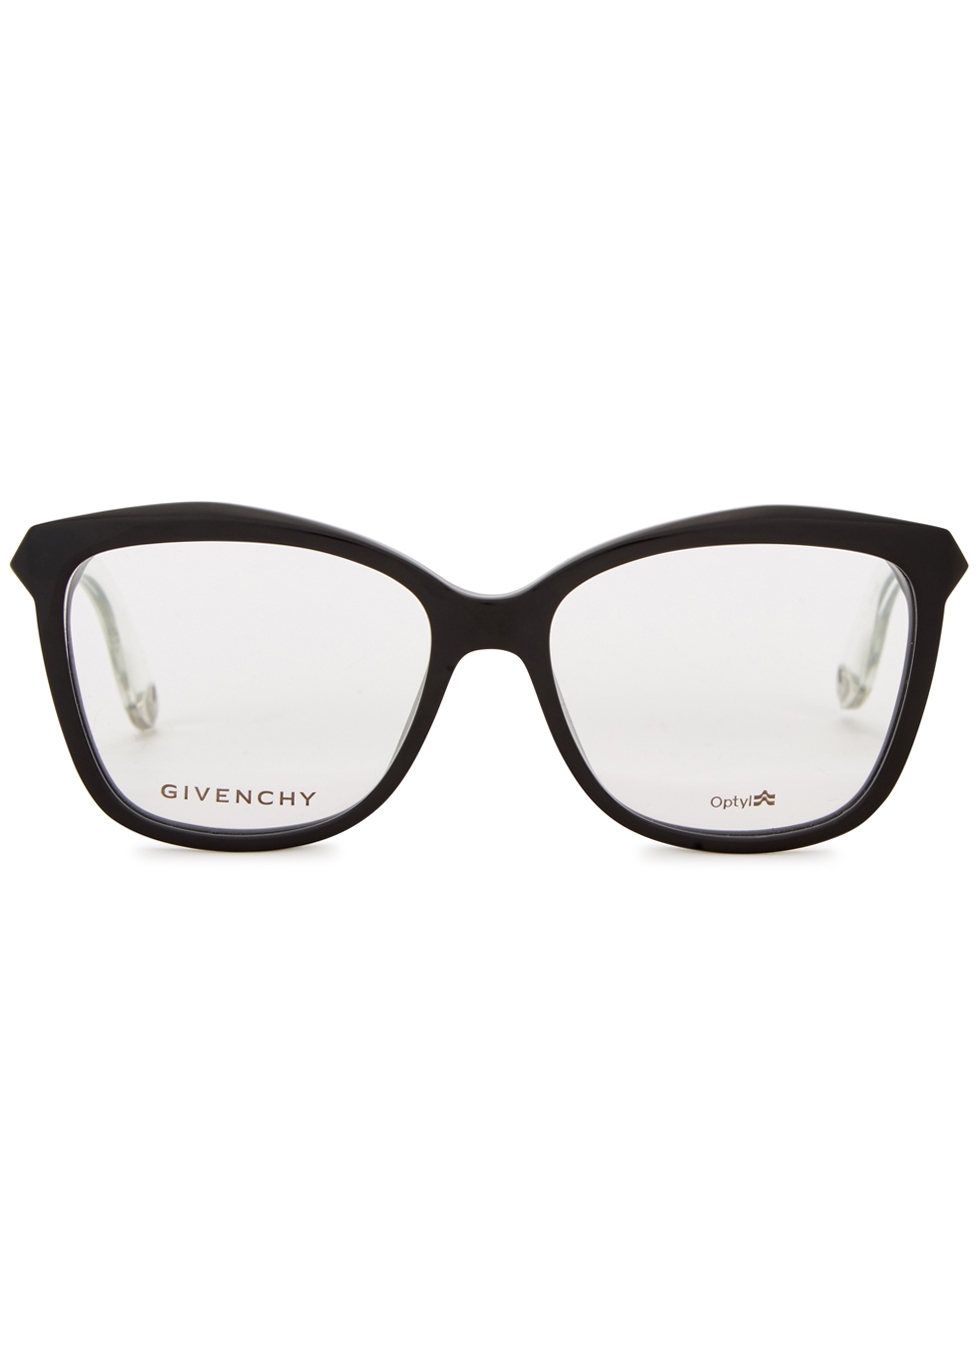 Black square-frame optical glasses - Givenchy